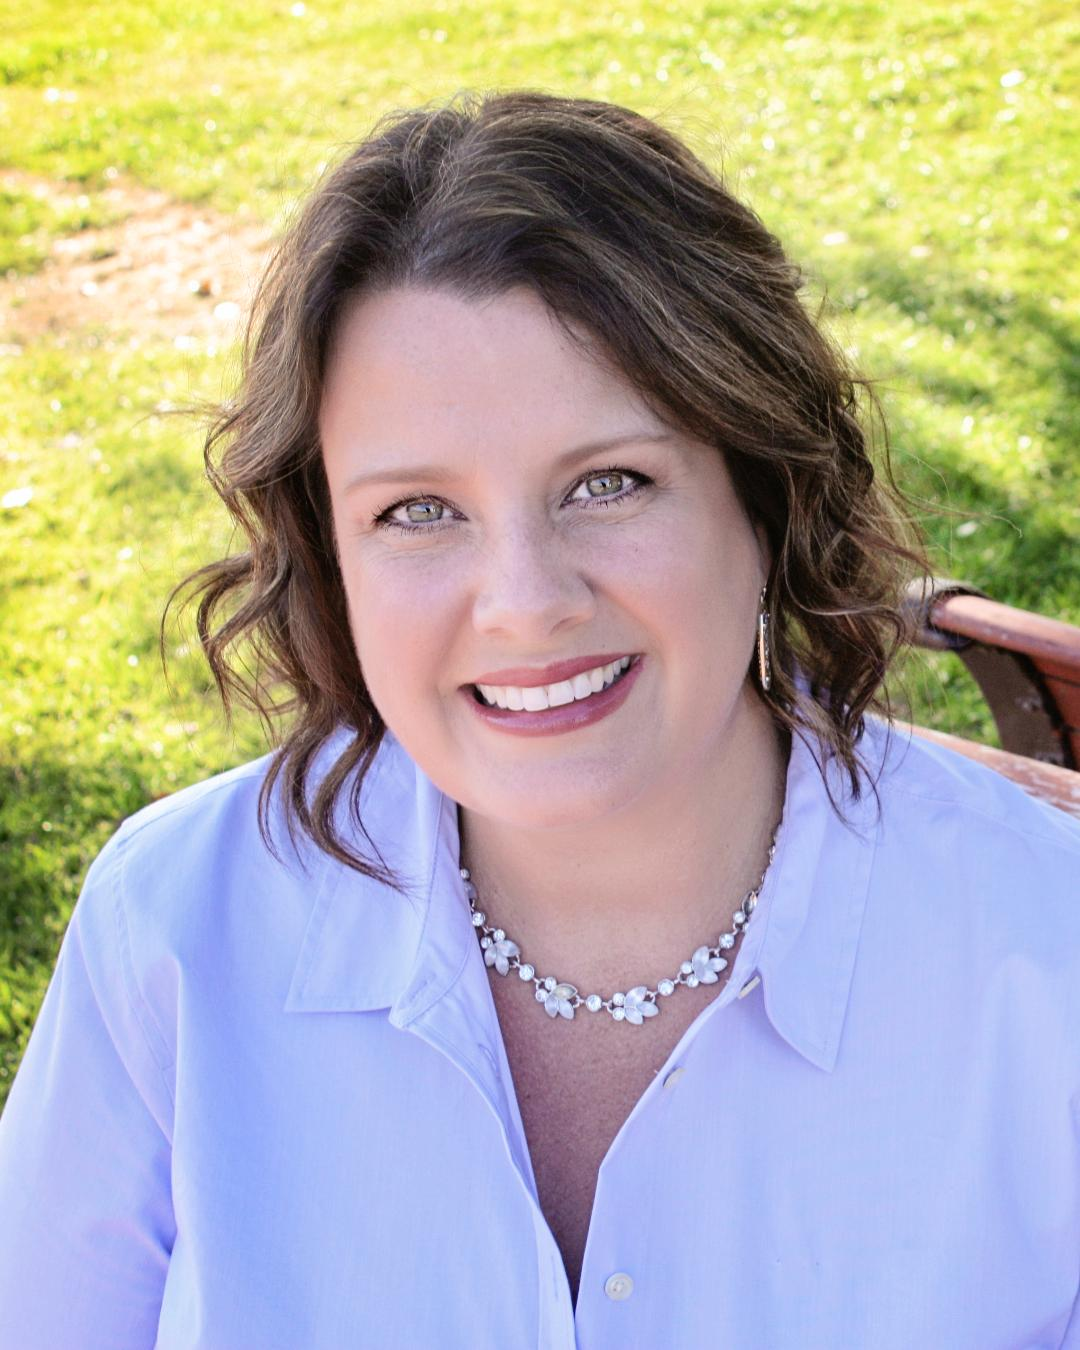 Tracy Dubois - CERTIFIED CHILDBIRTH EDUCATORCERTIFIED LACTATION COUNSELORCERTIFIED DOULAINFANT + CHILD SLEEP EDUCATOR